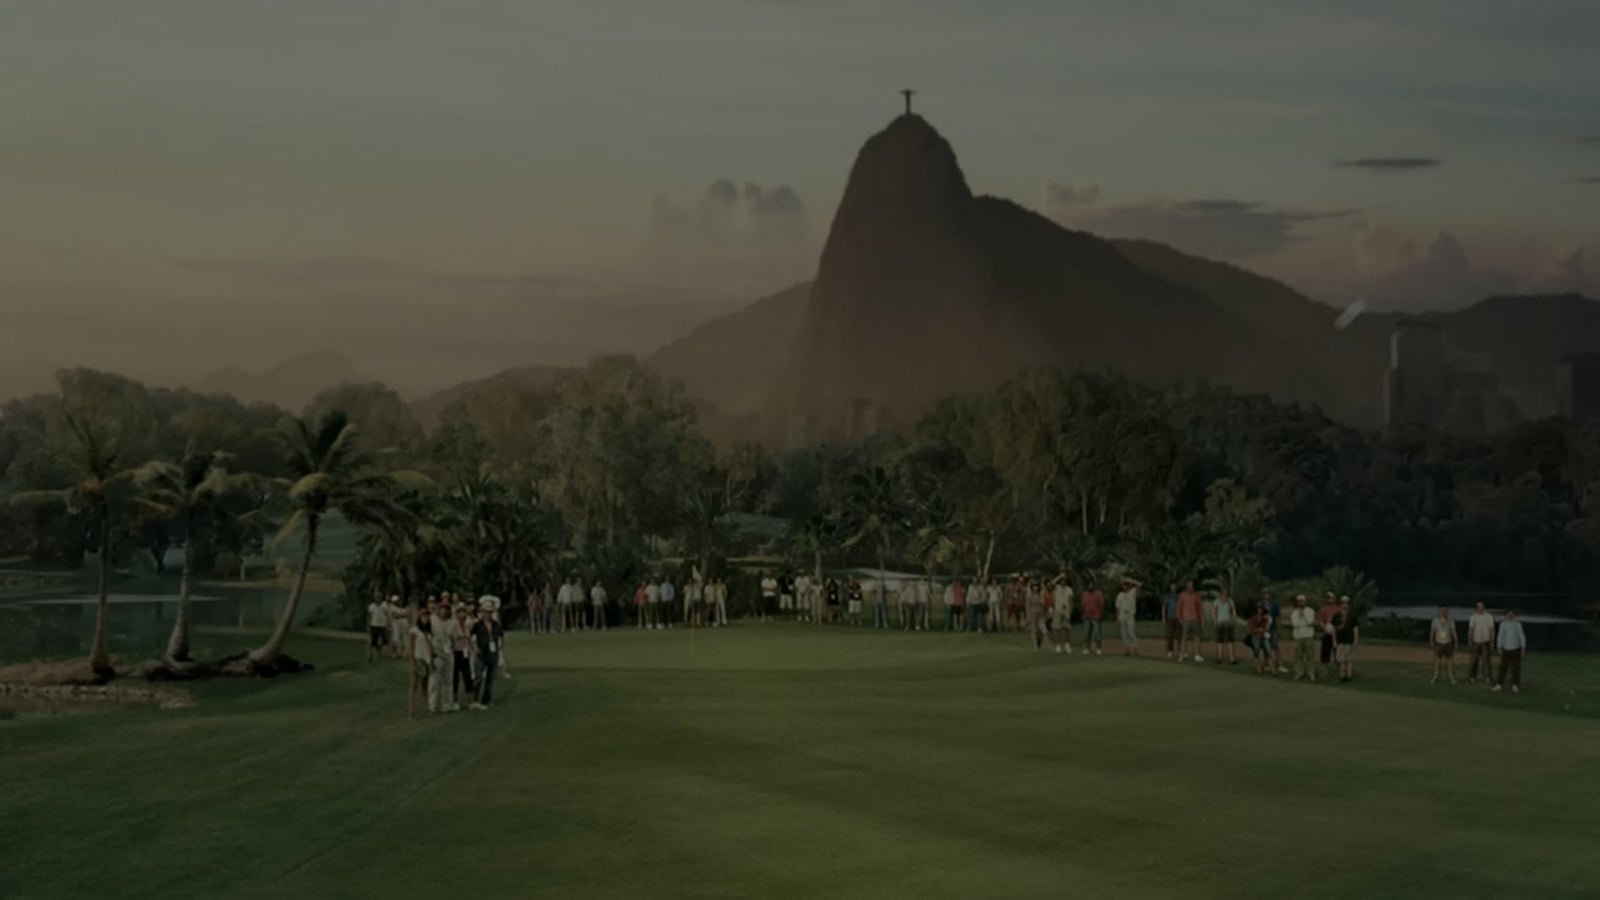 At Rio 2016, golf returned to the Olympic Games after an absence of 112 years. For the first time since 1904, the game was included in the roster of official sports and, for many of the world's best players, it presented a rare opportunity to swing for go